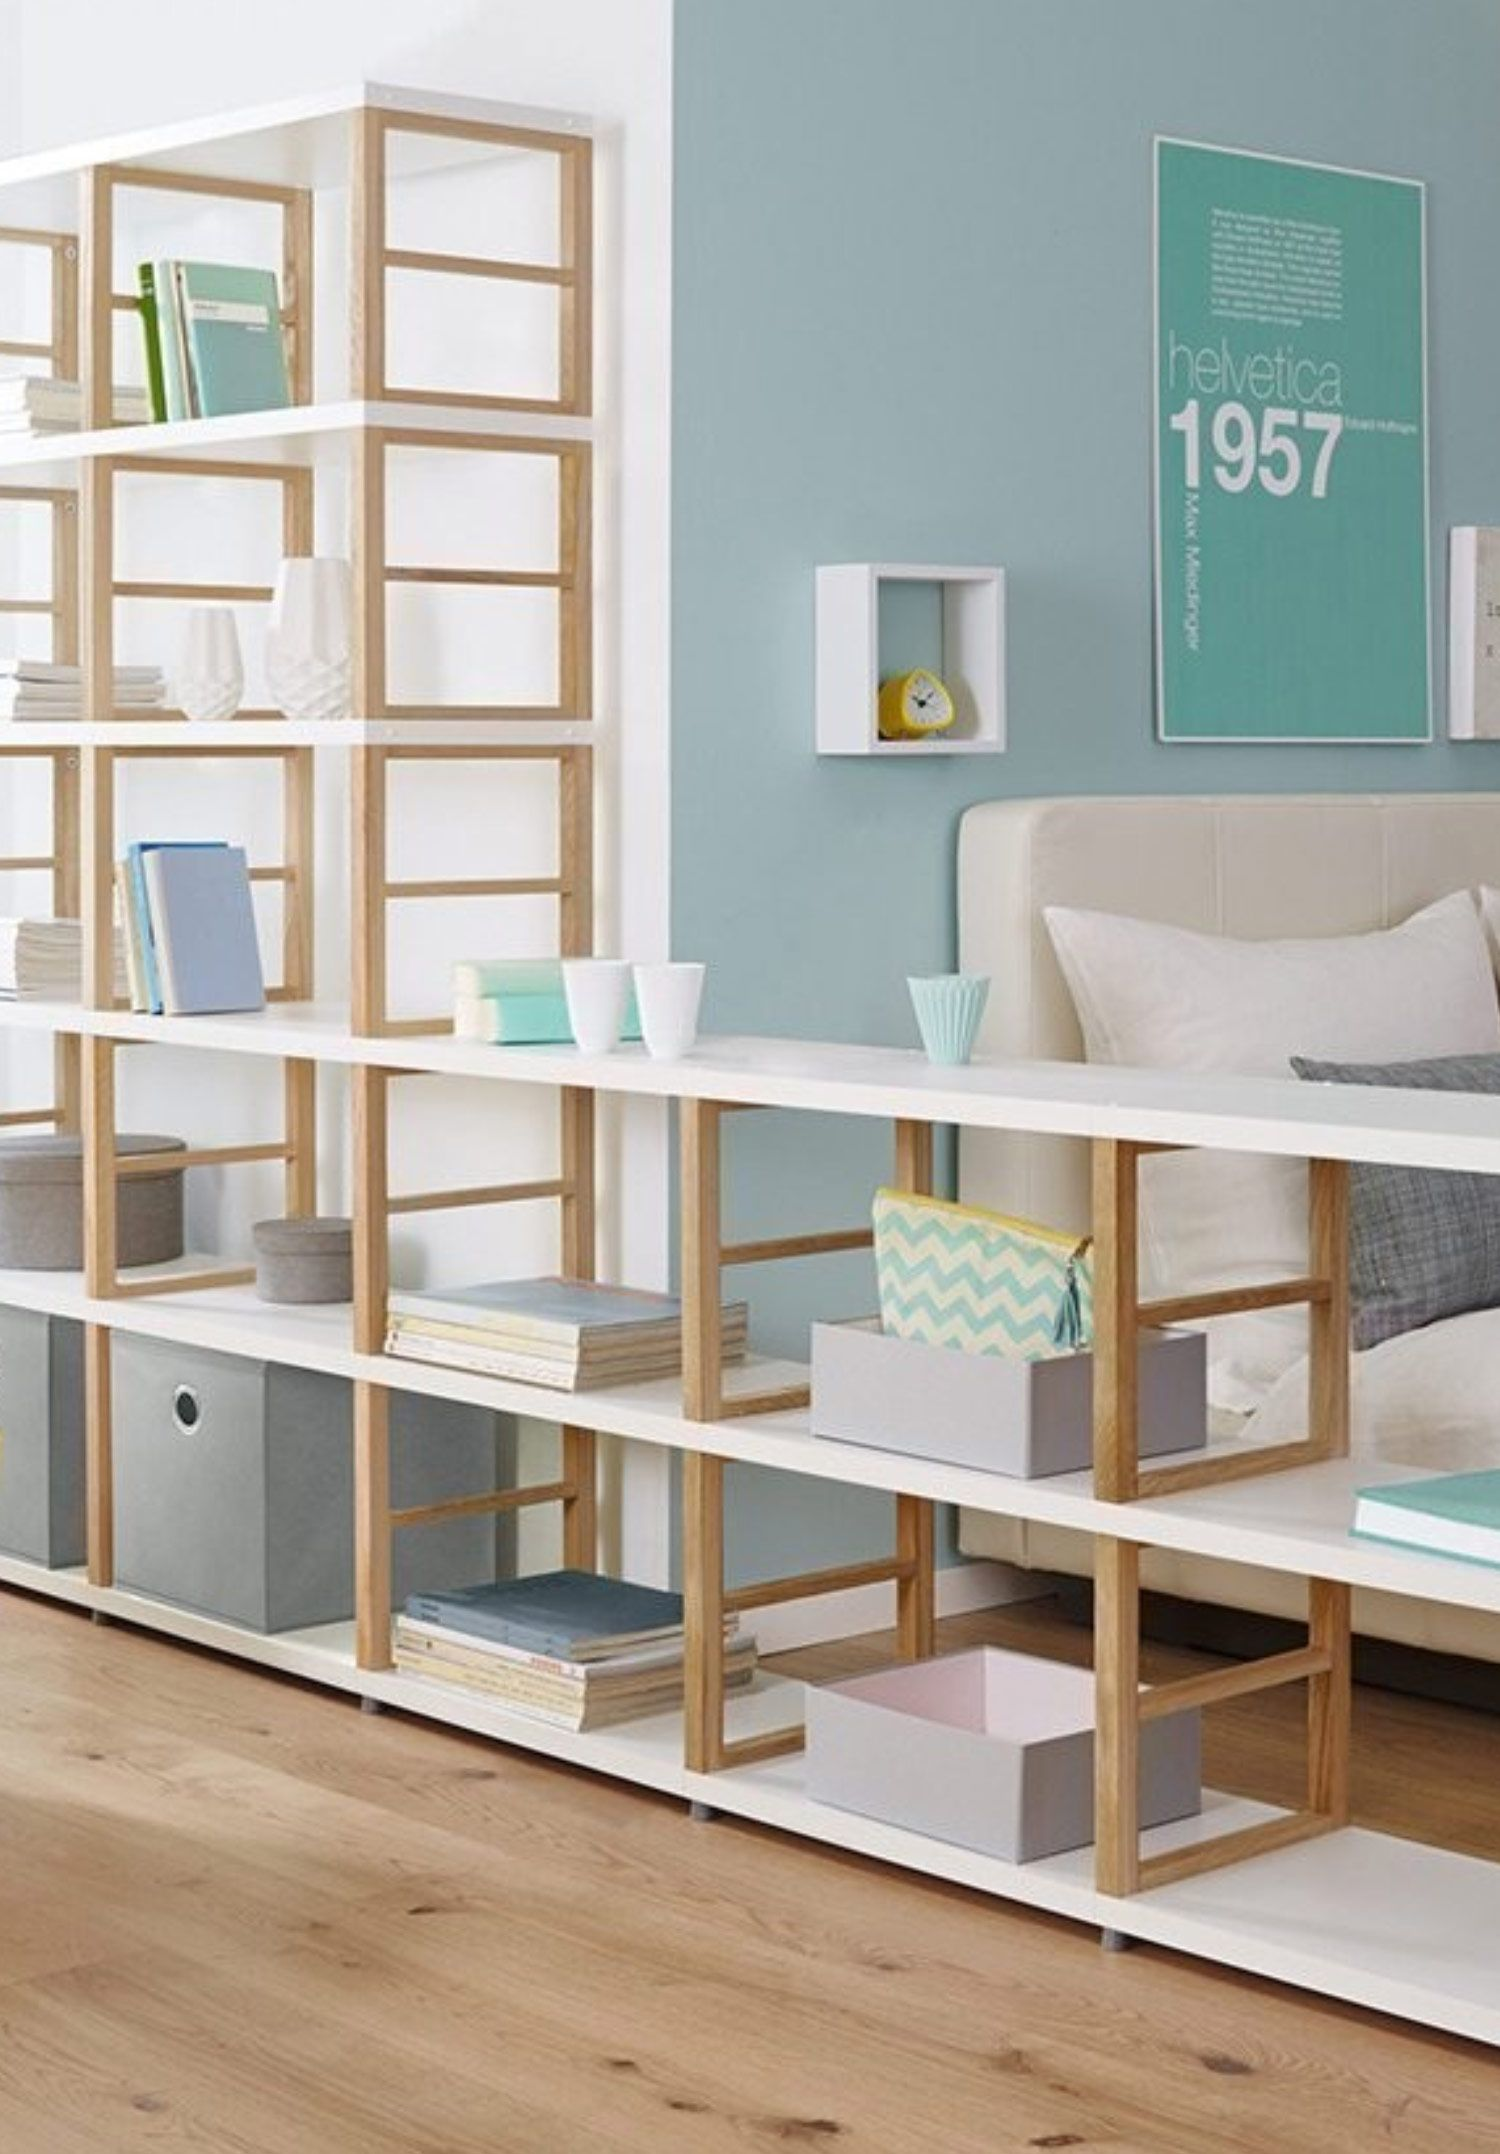 Maxx Shelving System For Living Room And Office 収納棚 棚 家具